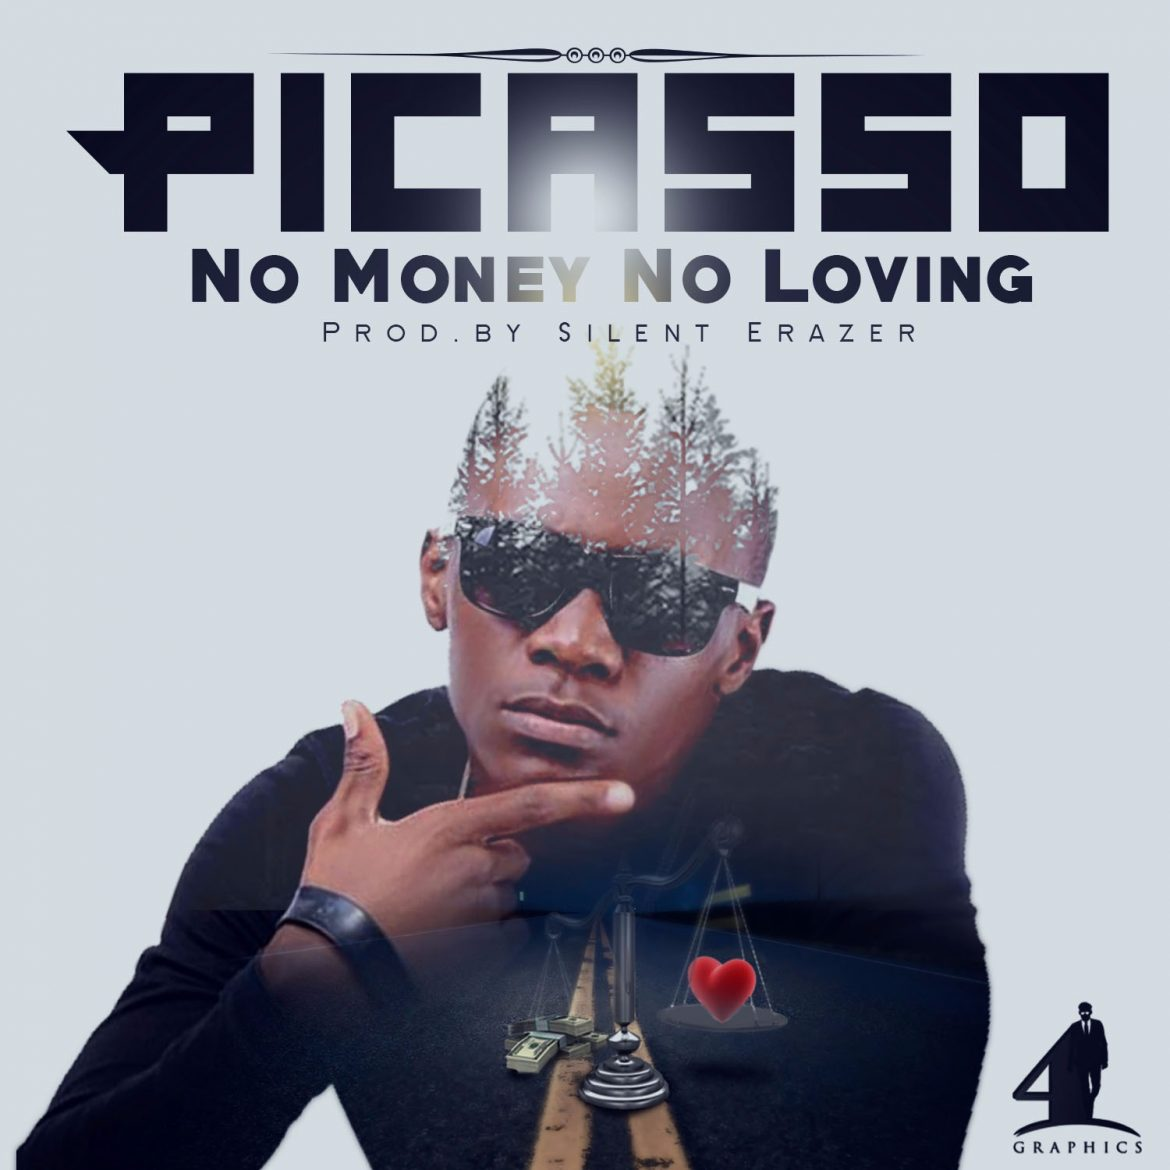 Picasso - No Money No Lving